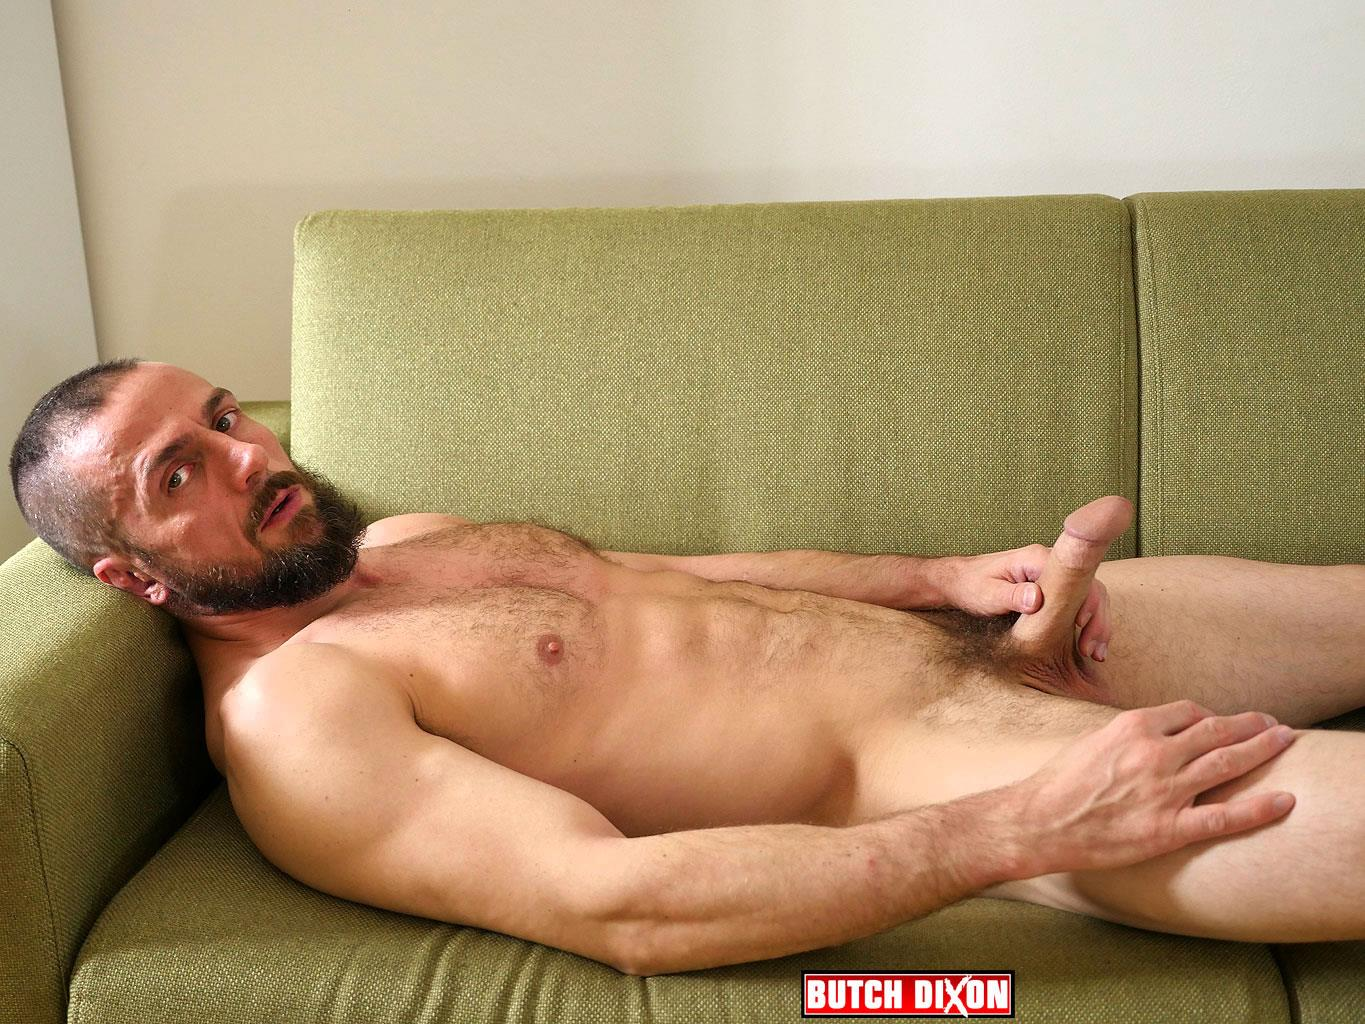 Butch Dixon Erik Lenn and Mike Bourne Masculine Guys Fucking Bareback Amateur Gay Porn 01 Beefy Masculine Guys Fucking Bareback With A Big Uncut Cock